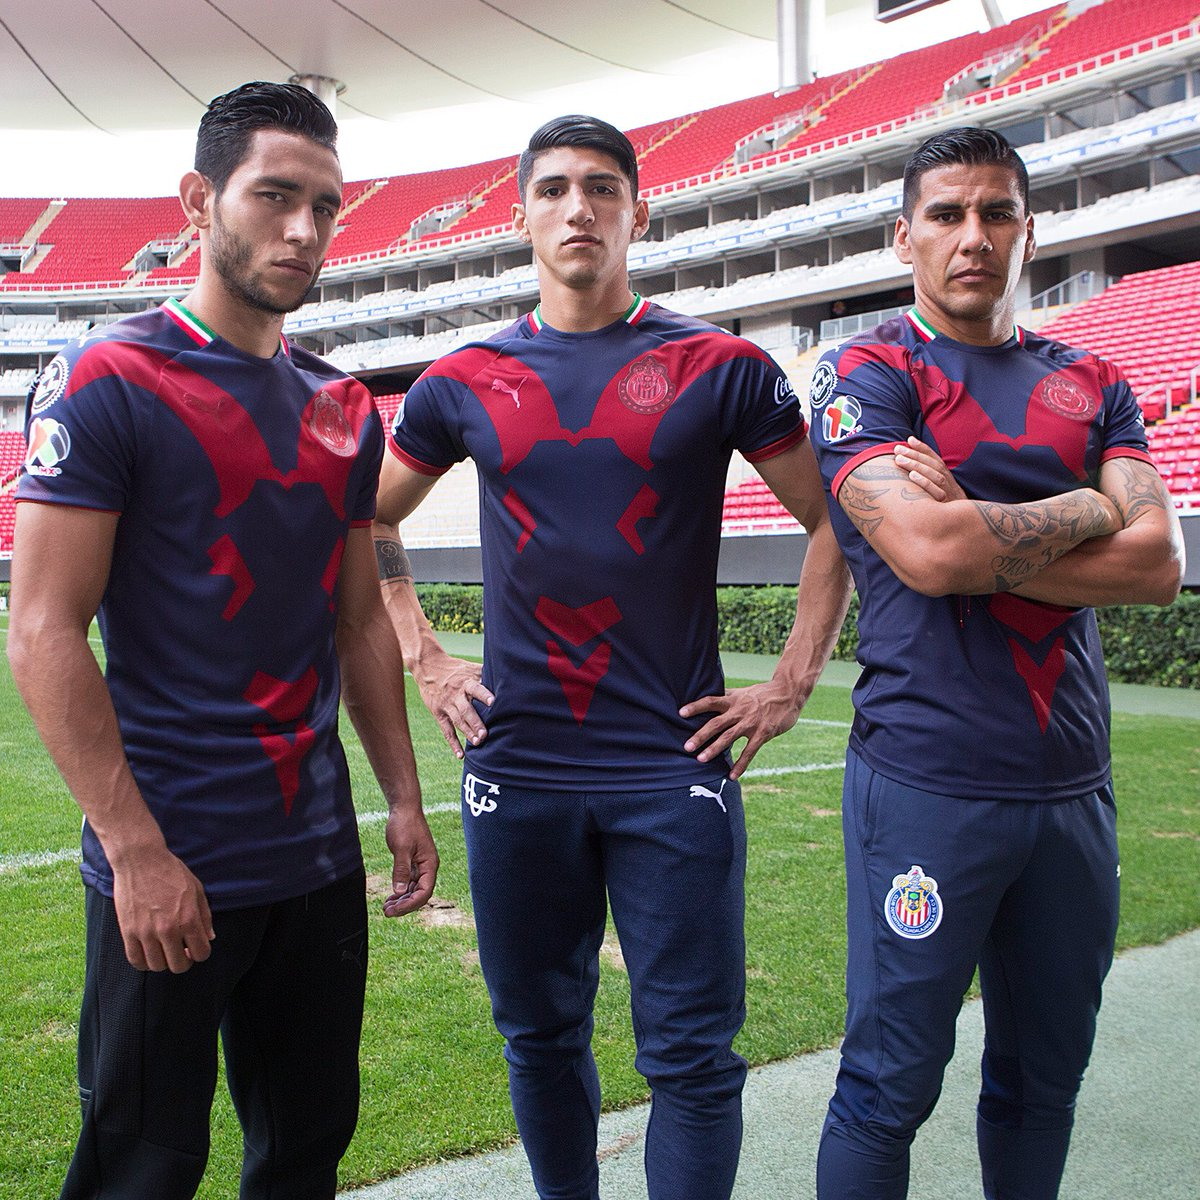 official photos 82838 242af Chivas 2019 Puma Third Kit | 18/19 Kits | Football shirt blog